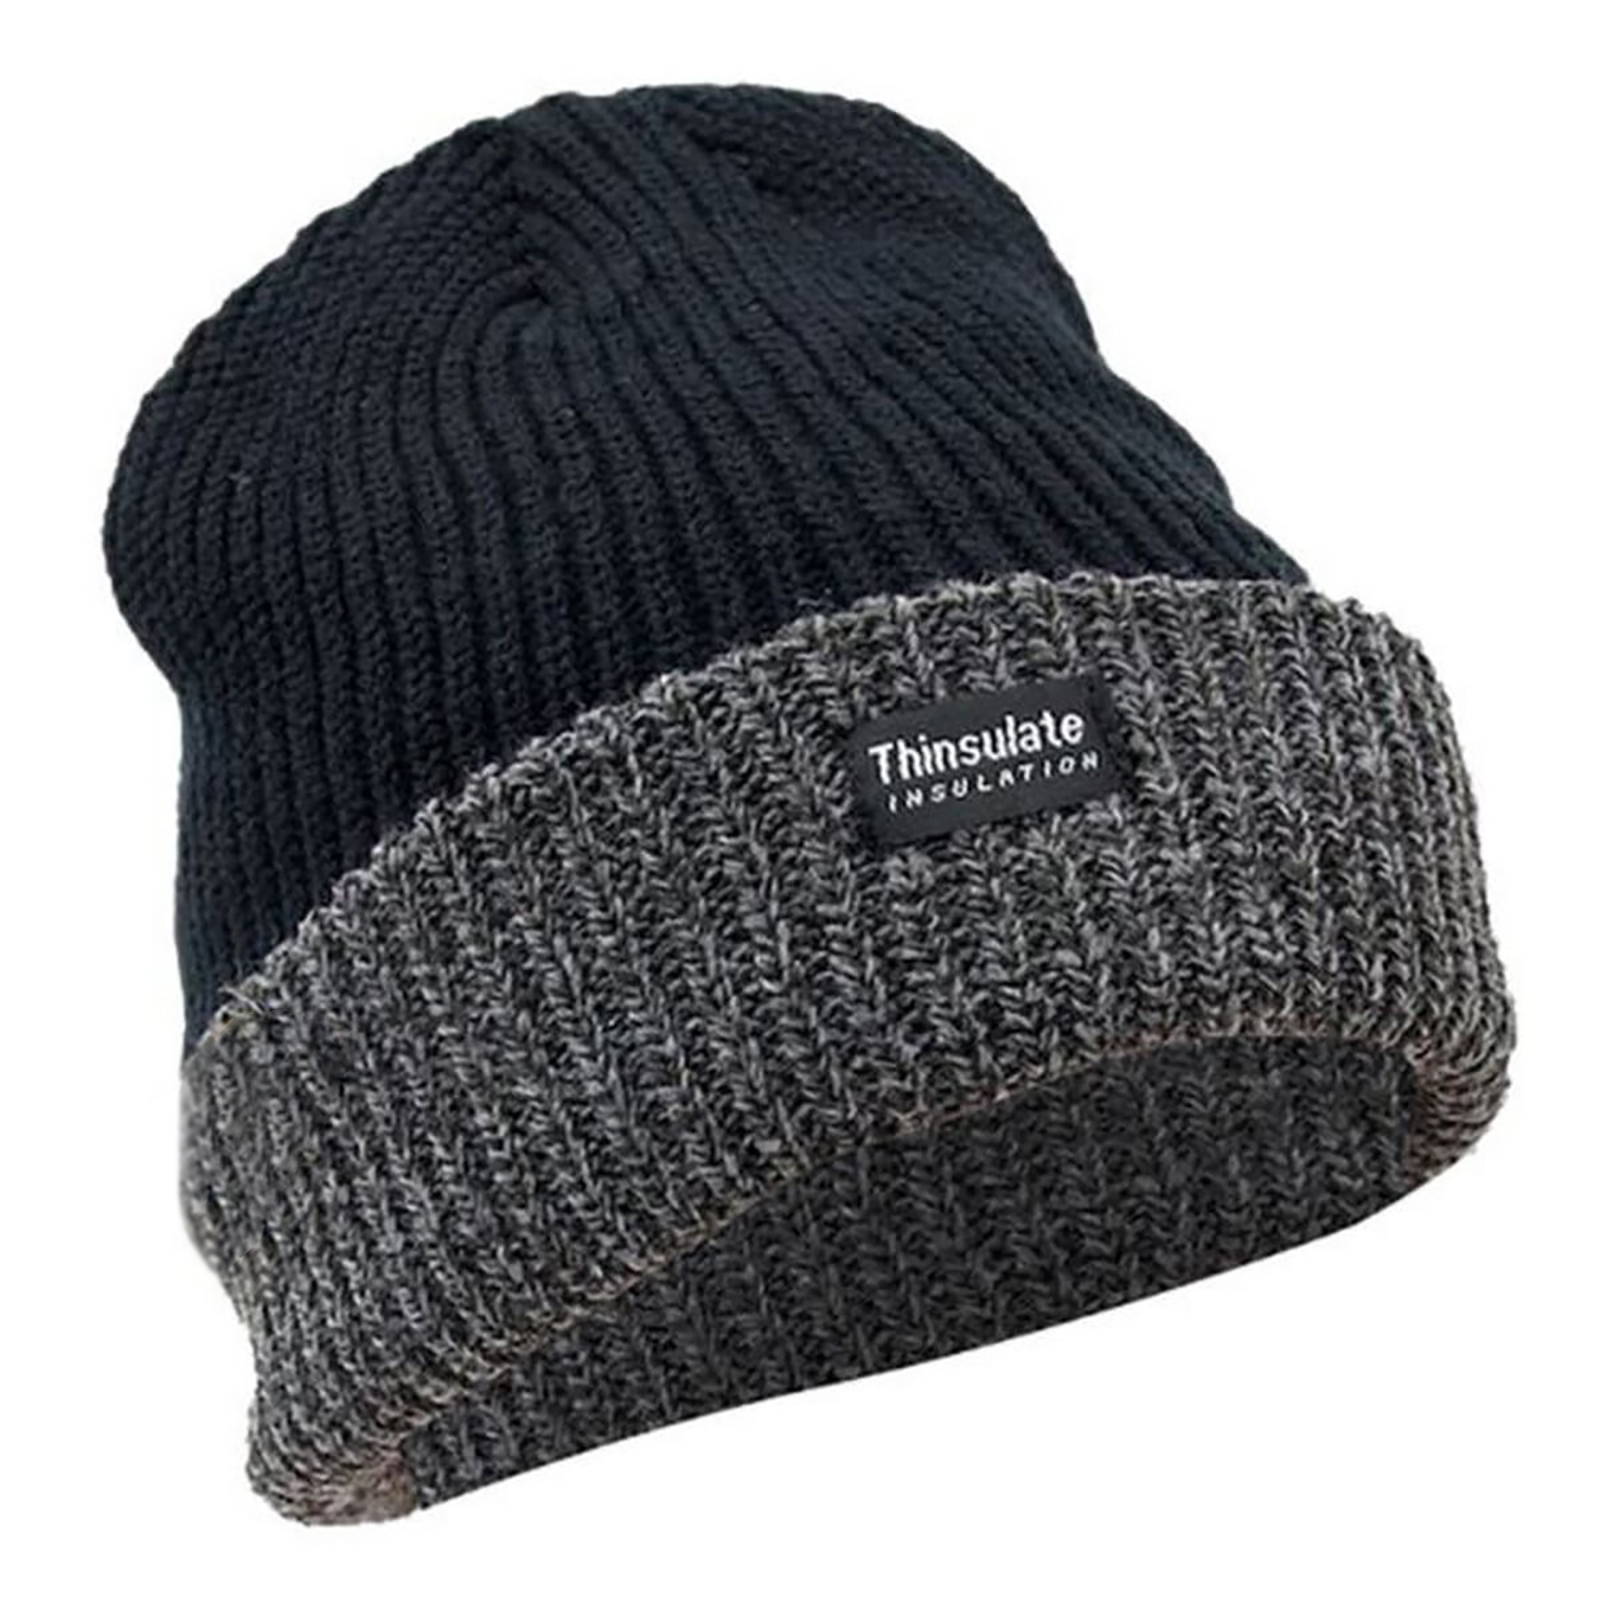 Details about FLOSO Unisex Mens Womens Thinsulate Heavy Knit Winter Ski Thermal  Hat (HA358) 199df70e00e